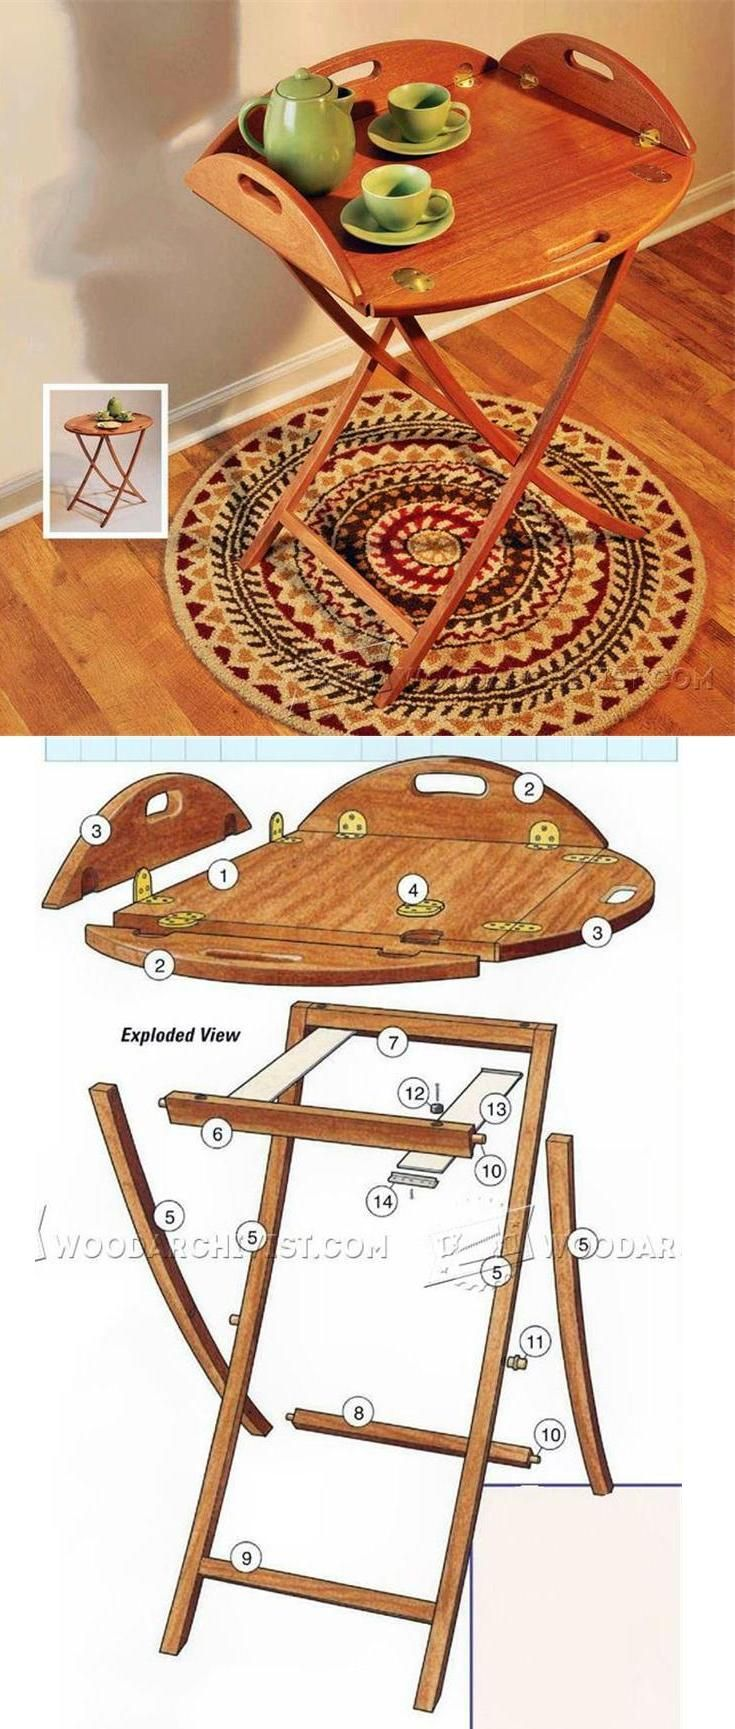 Butler Tray and Stand Plans - Furniture Plans and Projects | WoodArchivist.com